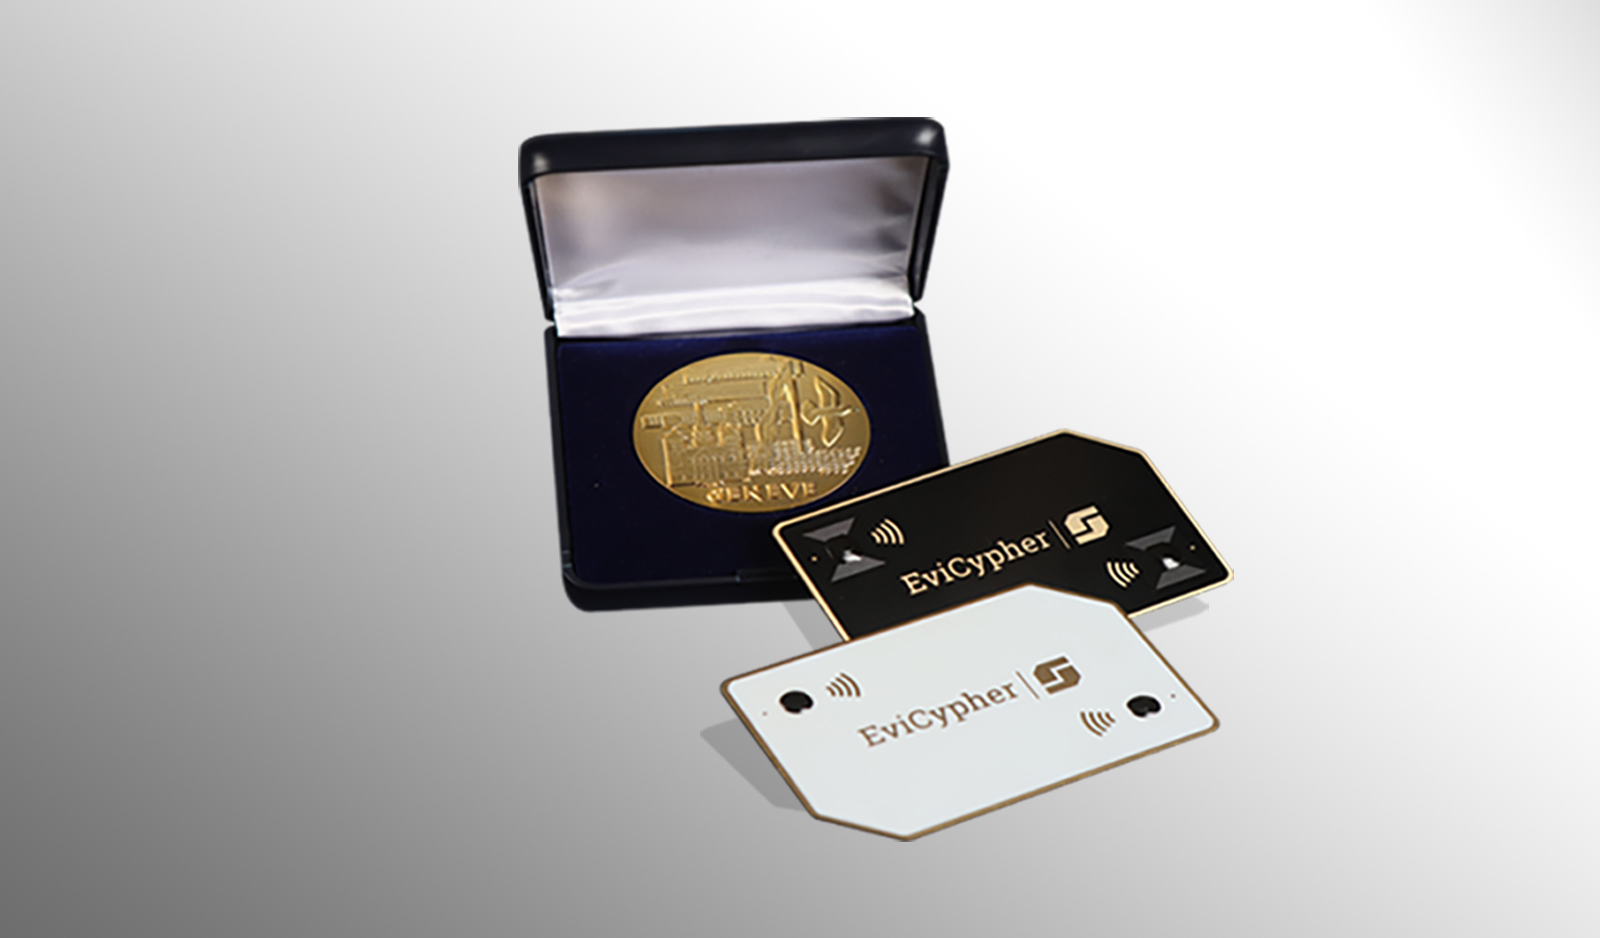 Best invention worldwide 2021, EviCypher NFC Hardware Wallet contactless Secrets Management multi trust criteria Gold Medal 2021 Geneva international inventions by Freemindtronic Andorra